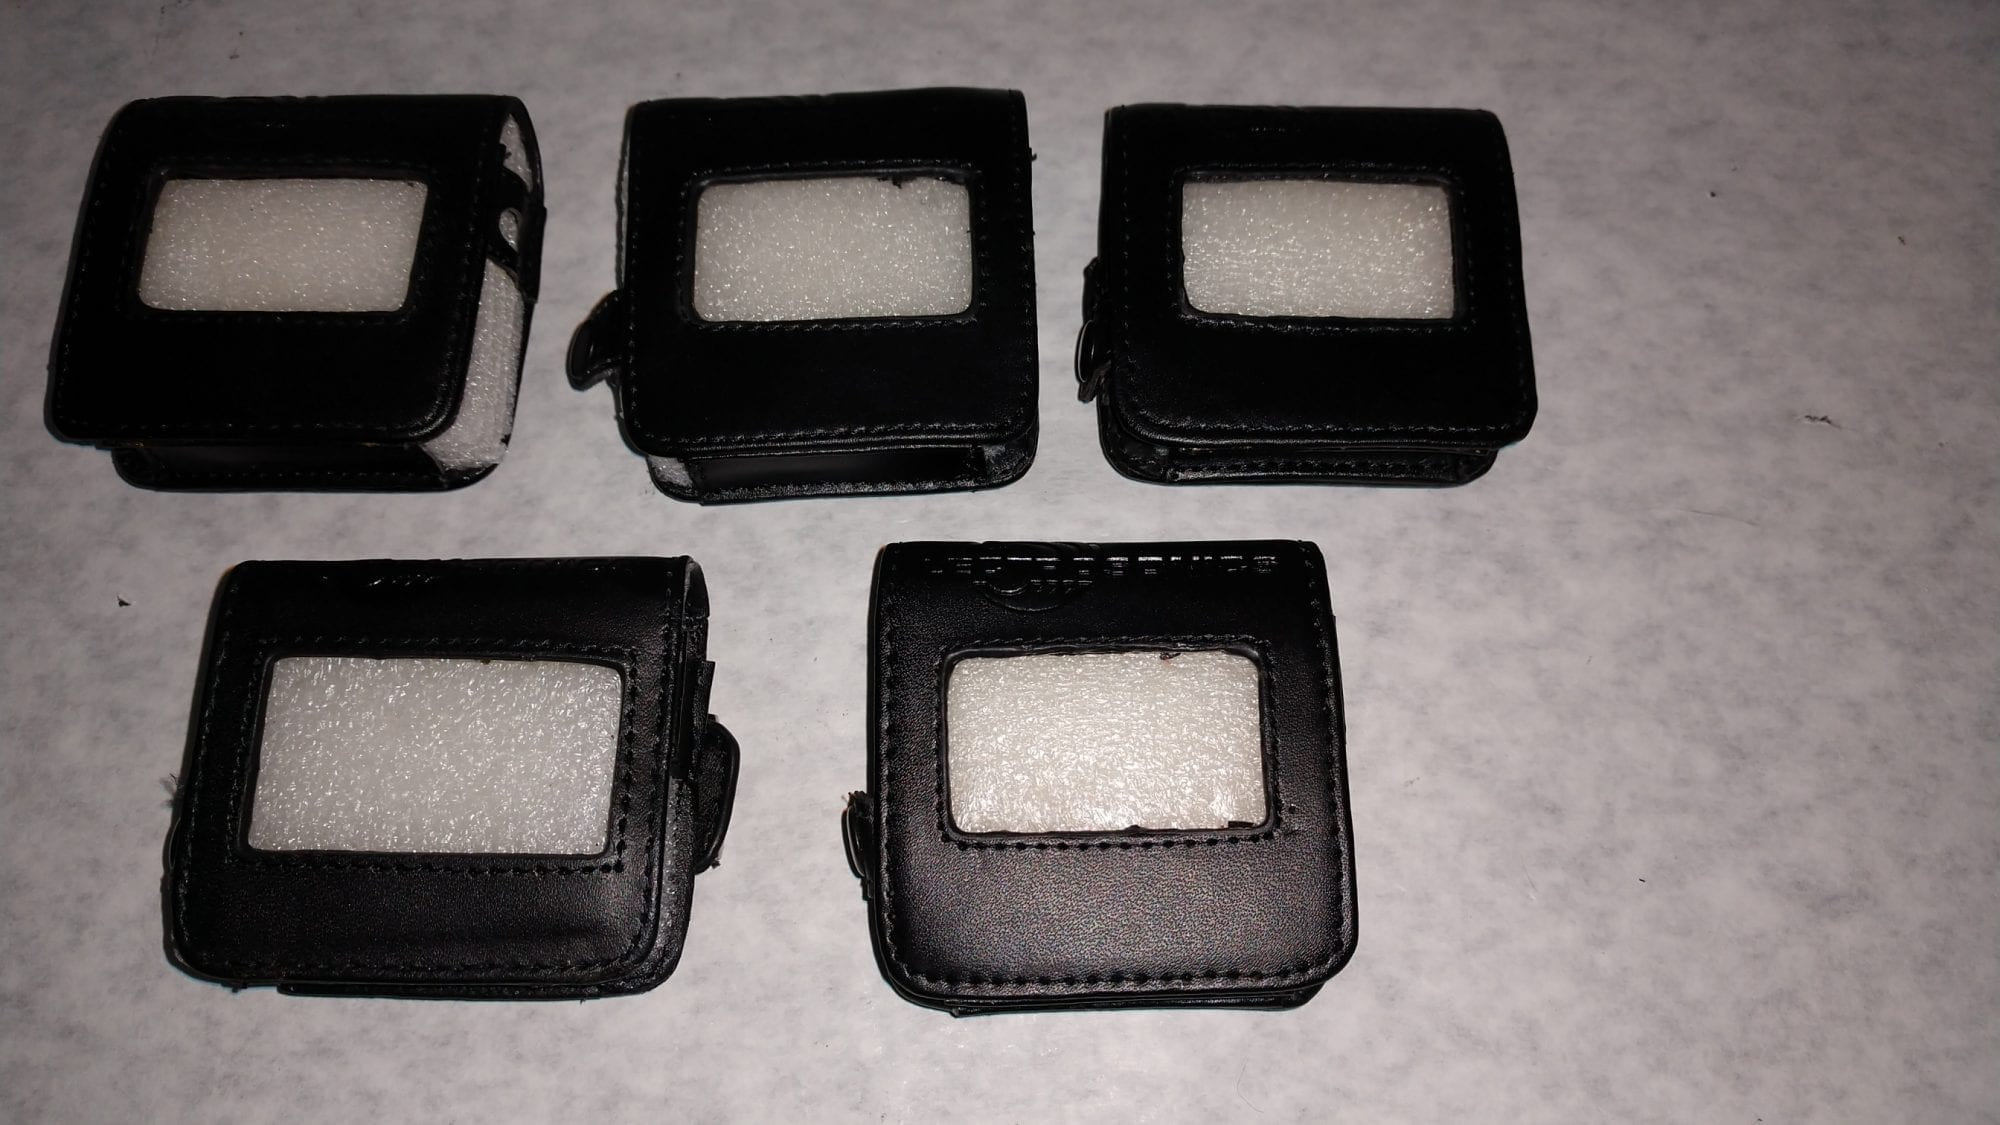 Lectrosonics PSMD Protective Pouch for SMD and SMQ Transmitters Lot of 5 Close